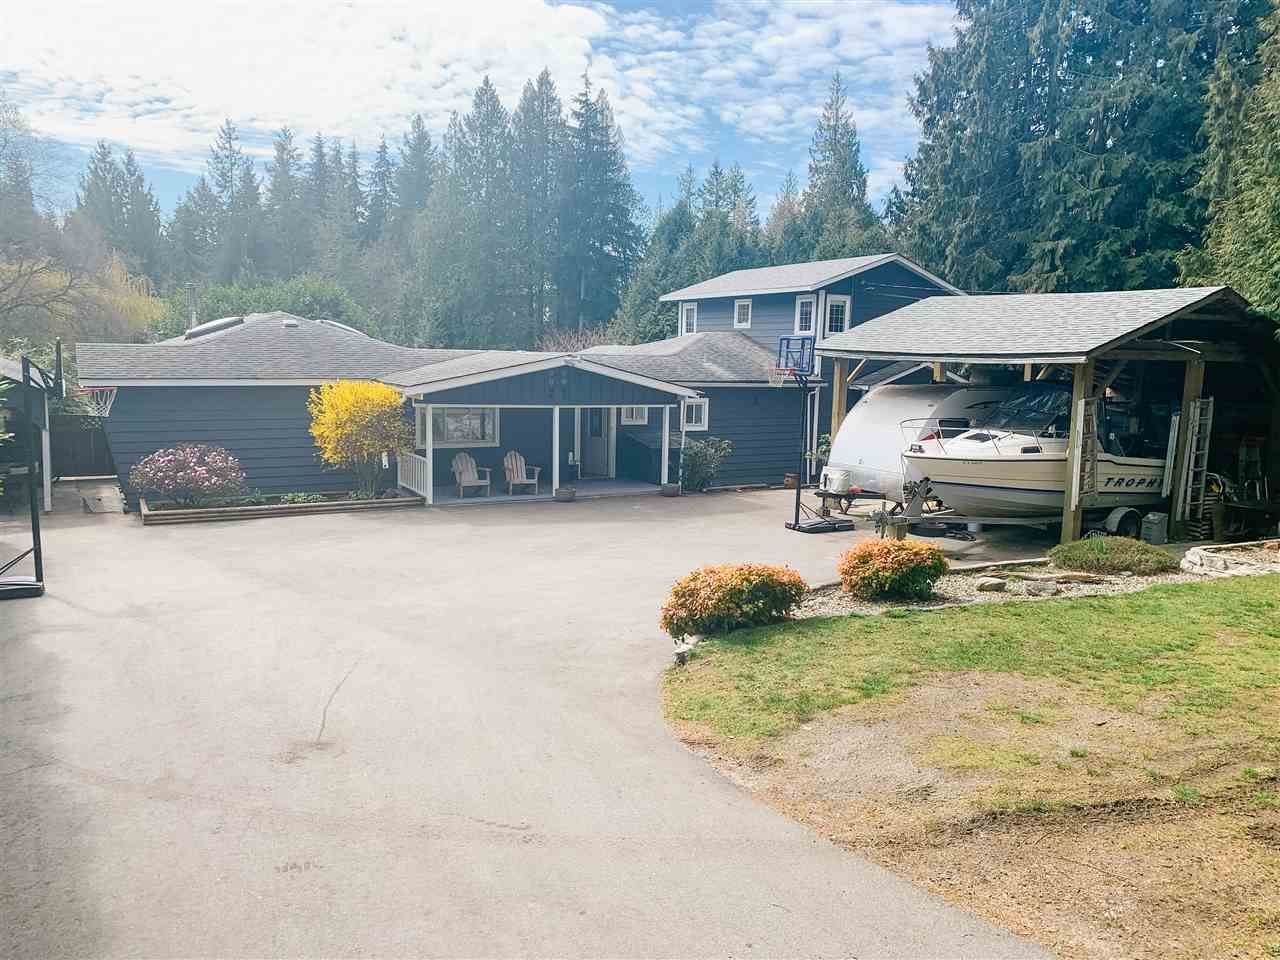 Photo 2: Photos: 1167 CHASTER Road in Gibsons: Gibsons & Area House for sale (Sunshine Coast)  : MLS®# R2449547